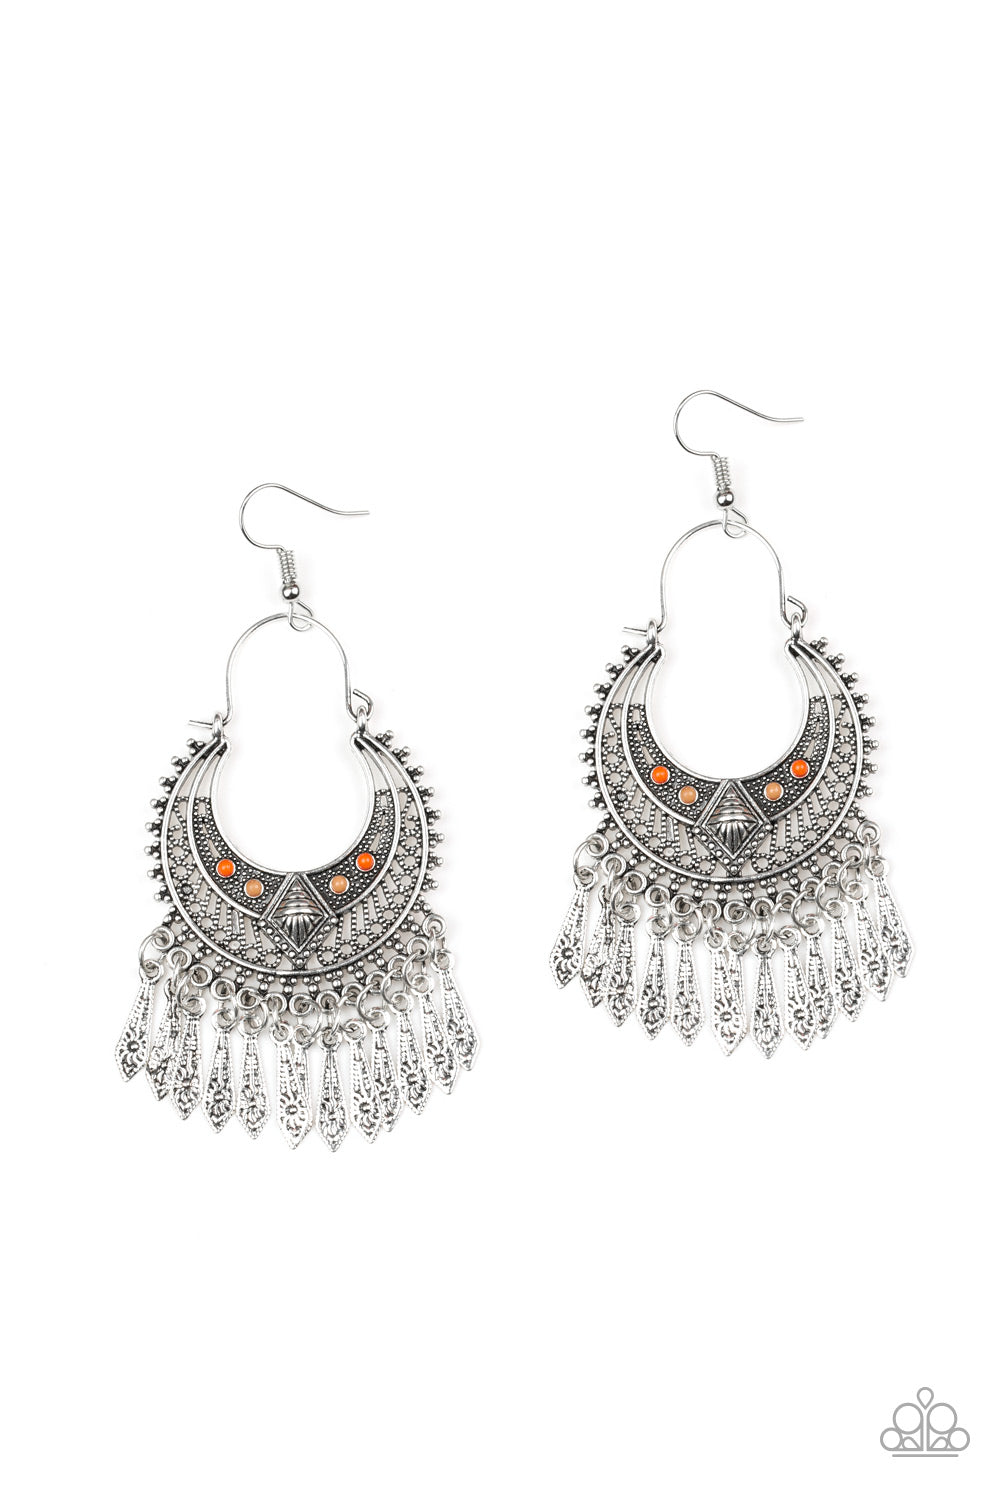 Paparazzi Accessories - Walk On The Wildside - Multicolor Earrings - JMJ Jewelry Collection